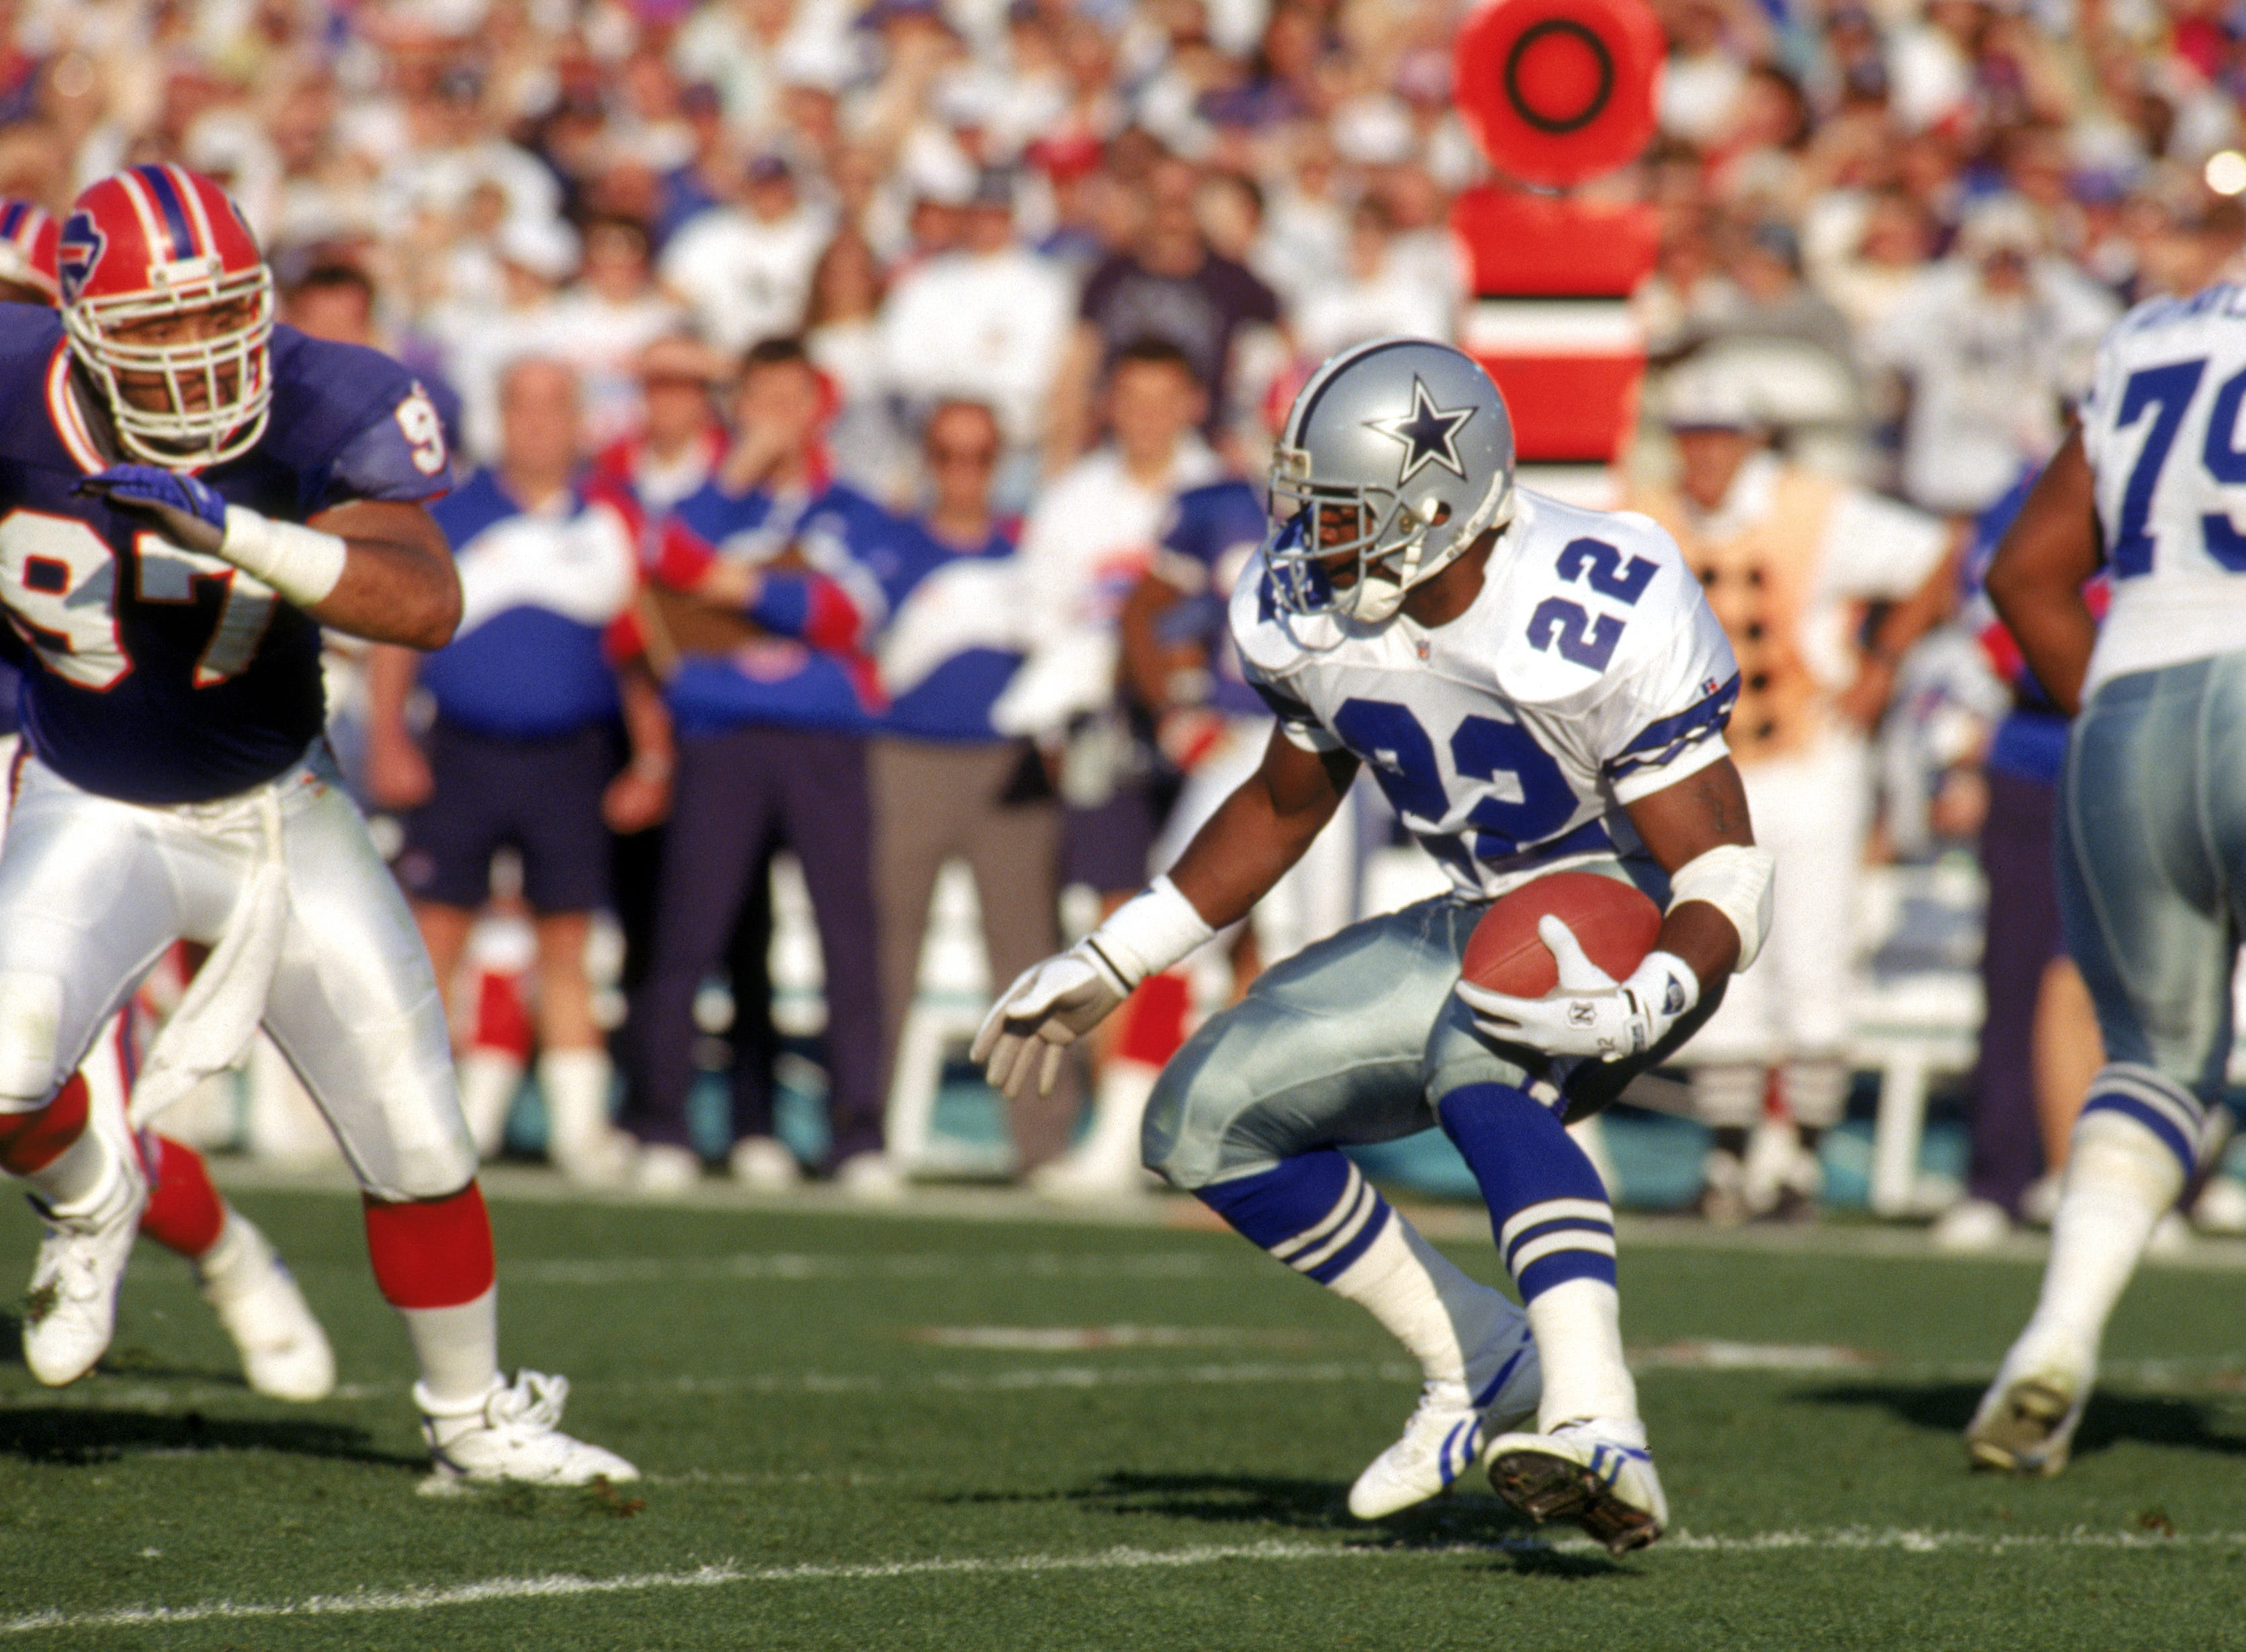 PASADENA, CA - JANUARY 31:  Running back Emmitt Smith #22 of the Dallas Cowboys rushes for yards during Super Bowl XXVII against the Buffalo Bills at the Rose Bowl on January 31, 1993 in Pasadena, California.  The Cowboys won 52-17.  (Photo by George Rose/Getty Images)